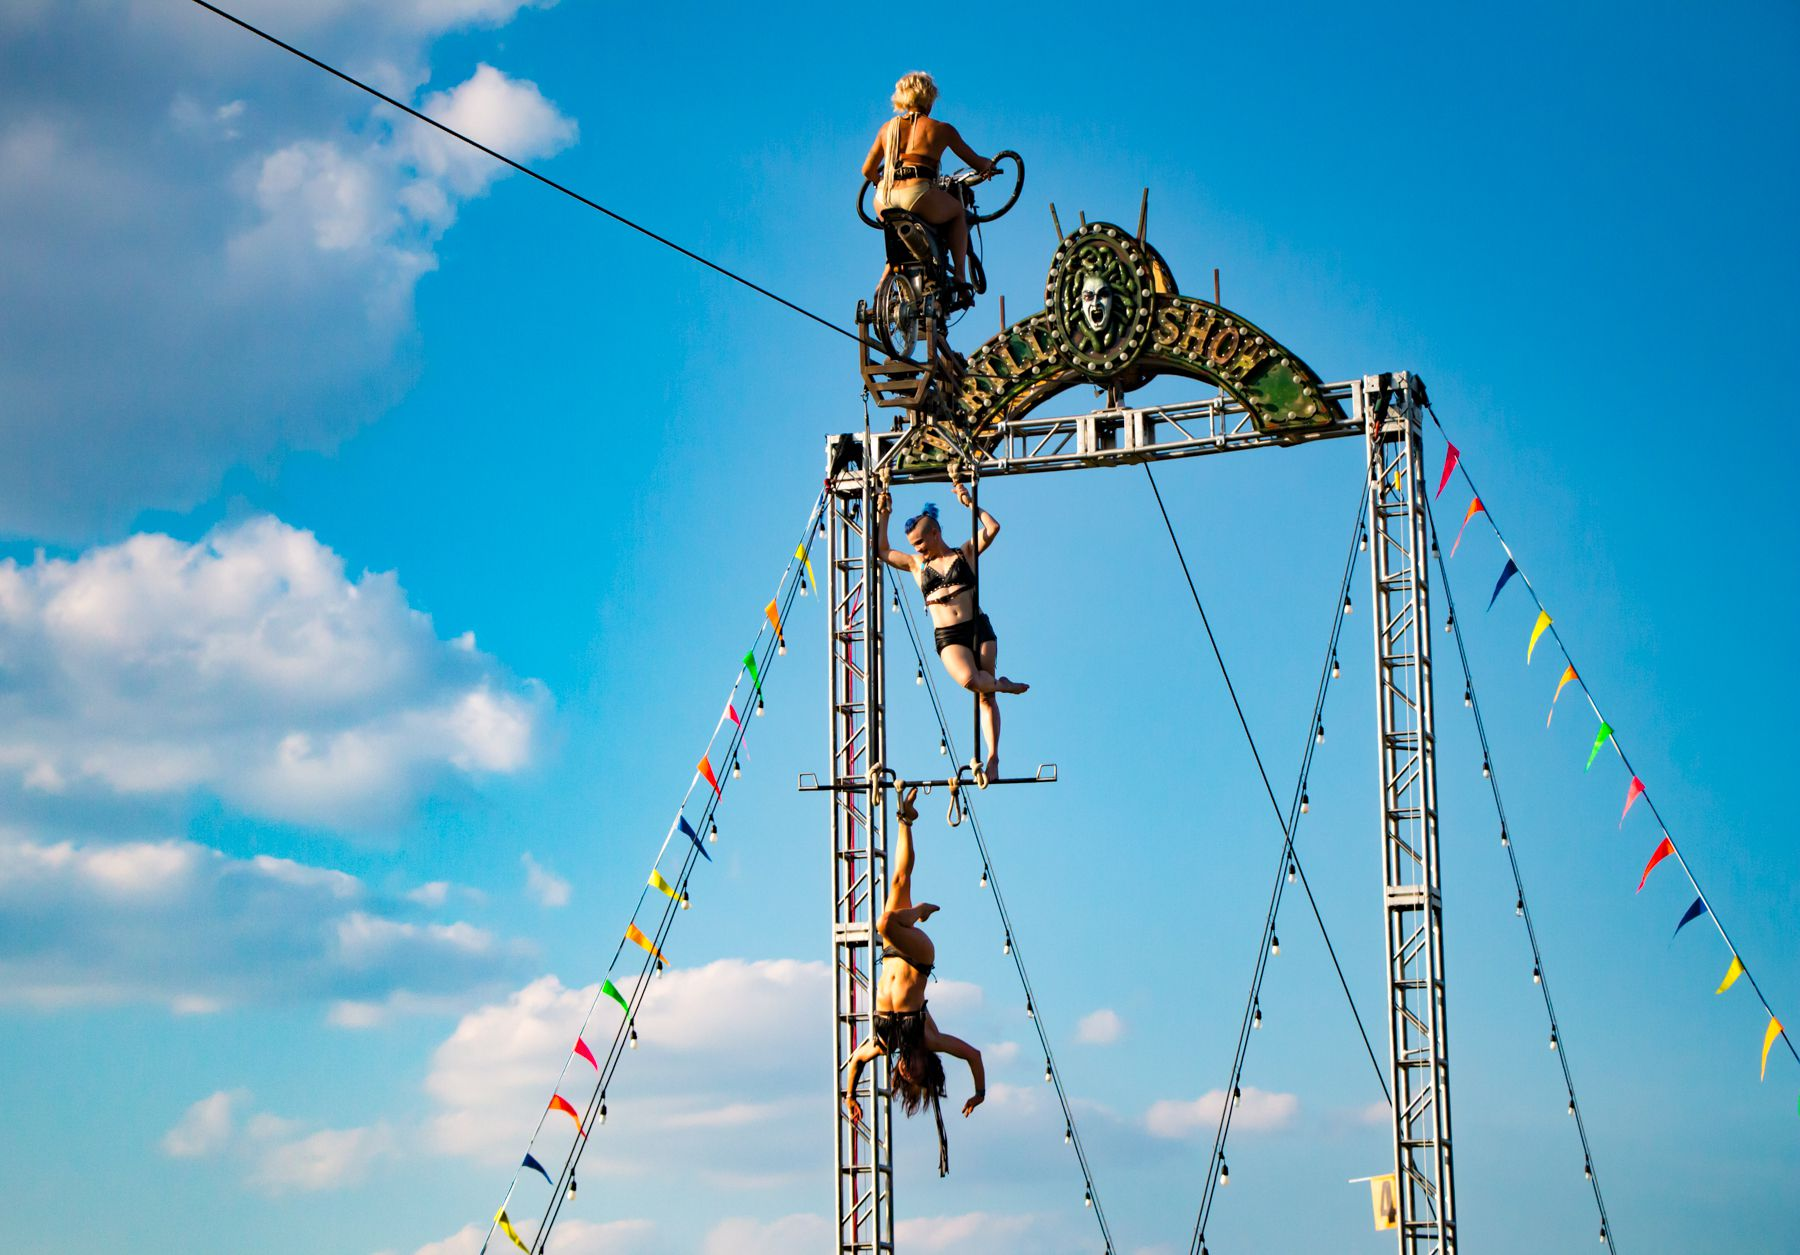 trapeze biker ladies 05 lior phillips Riot Fest 2017 Festival Review: From Worst to Best